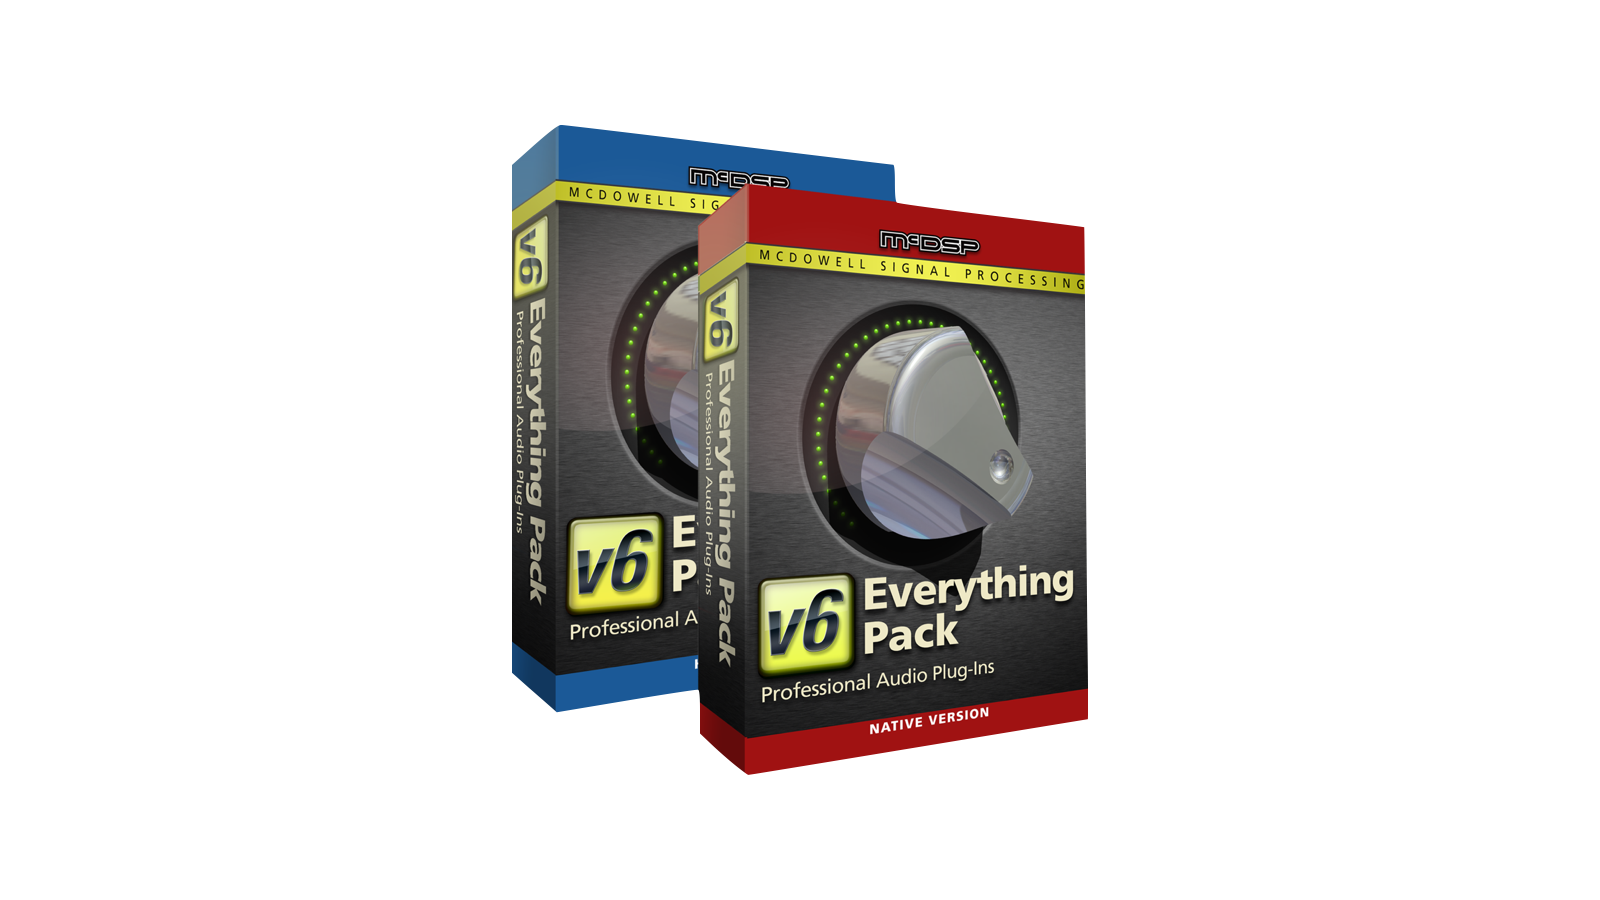 20150414_mcdsp_everythingpack_l